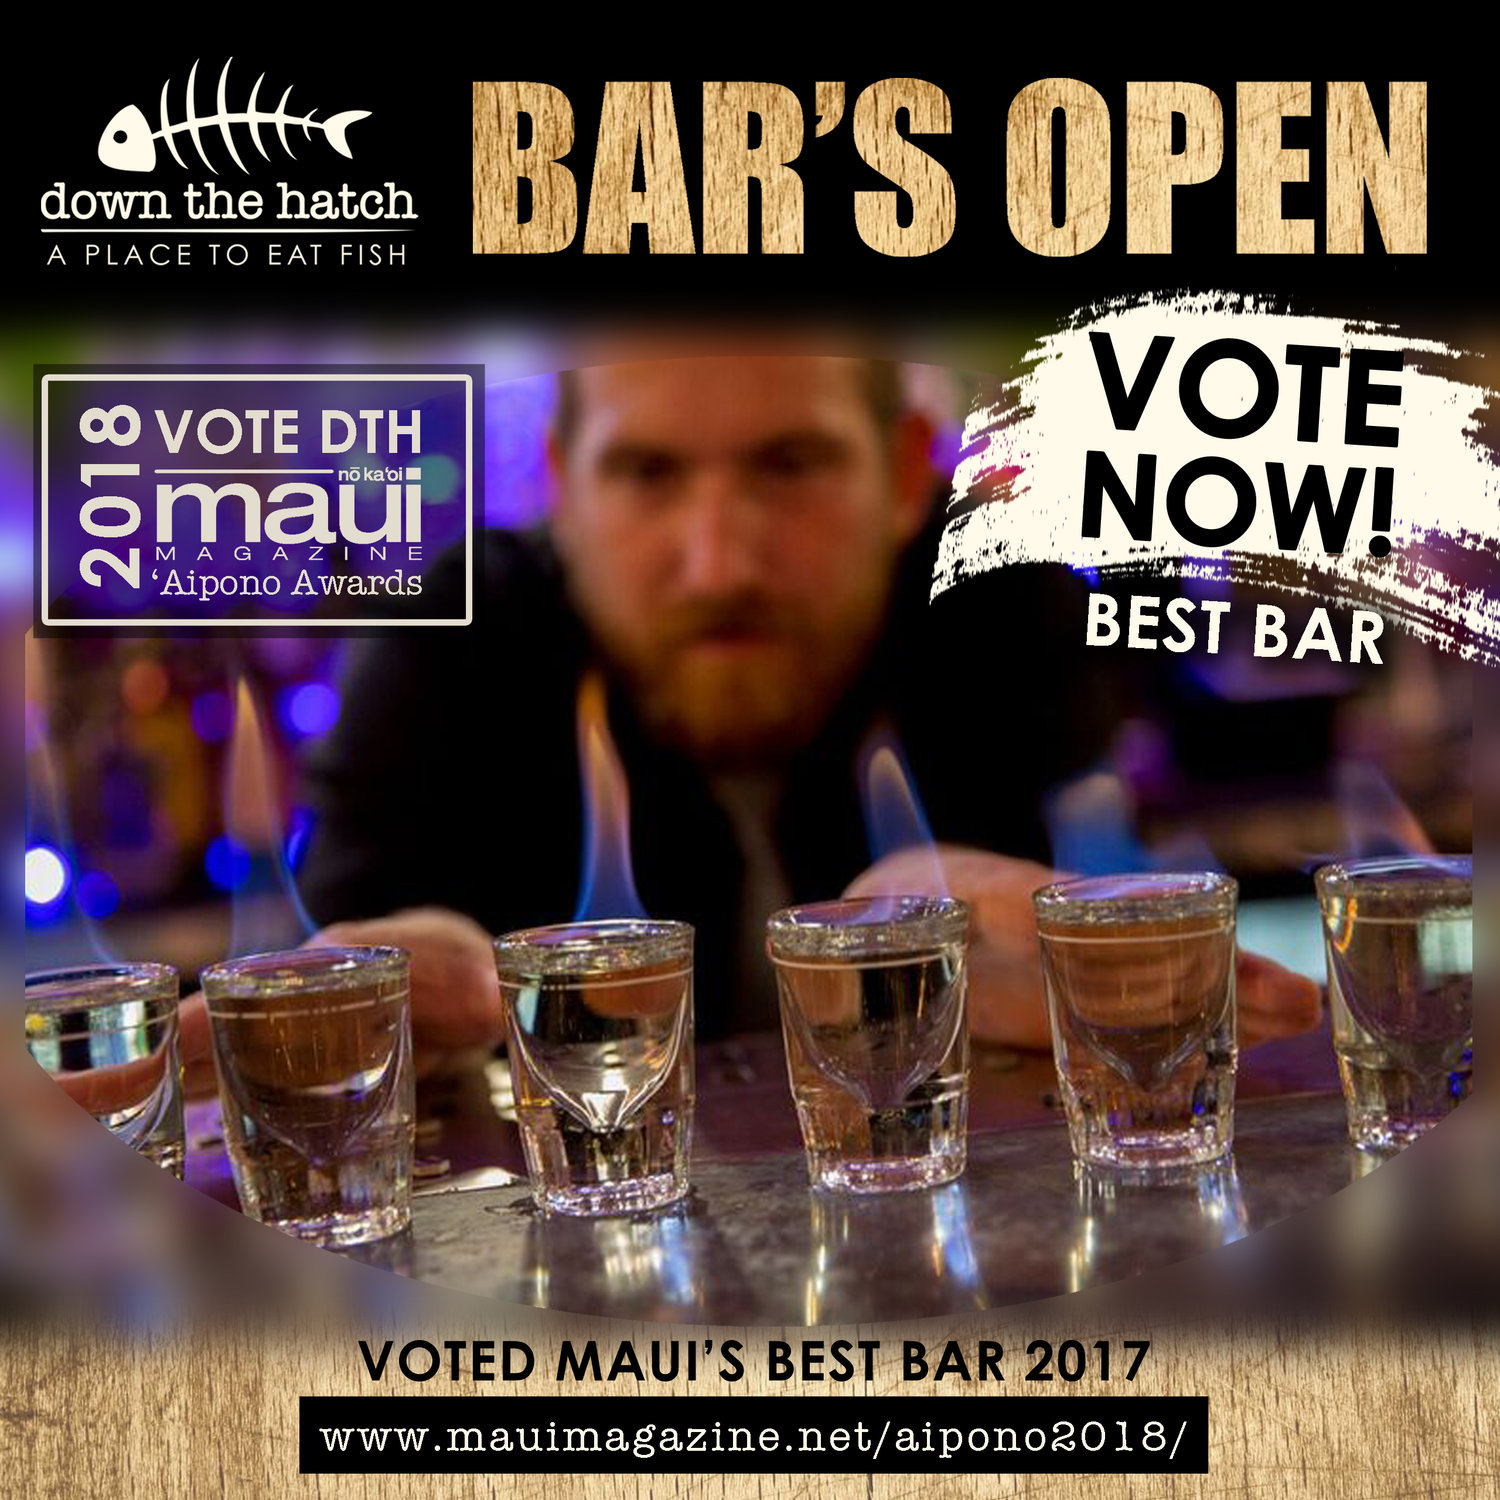 Vote for DTH Maui as BEST BAR!